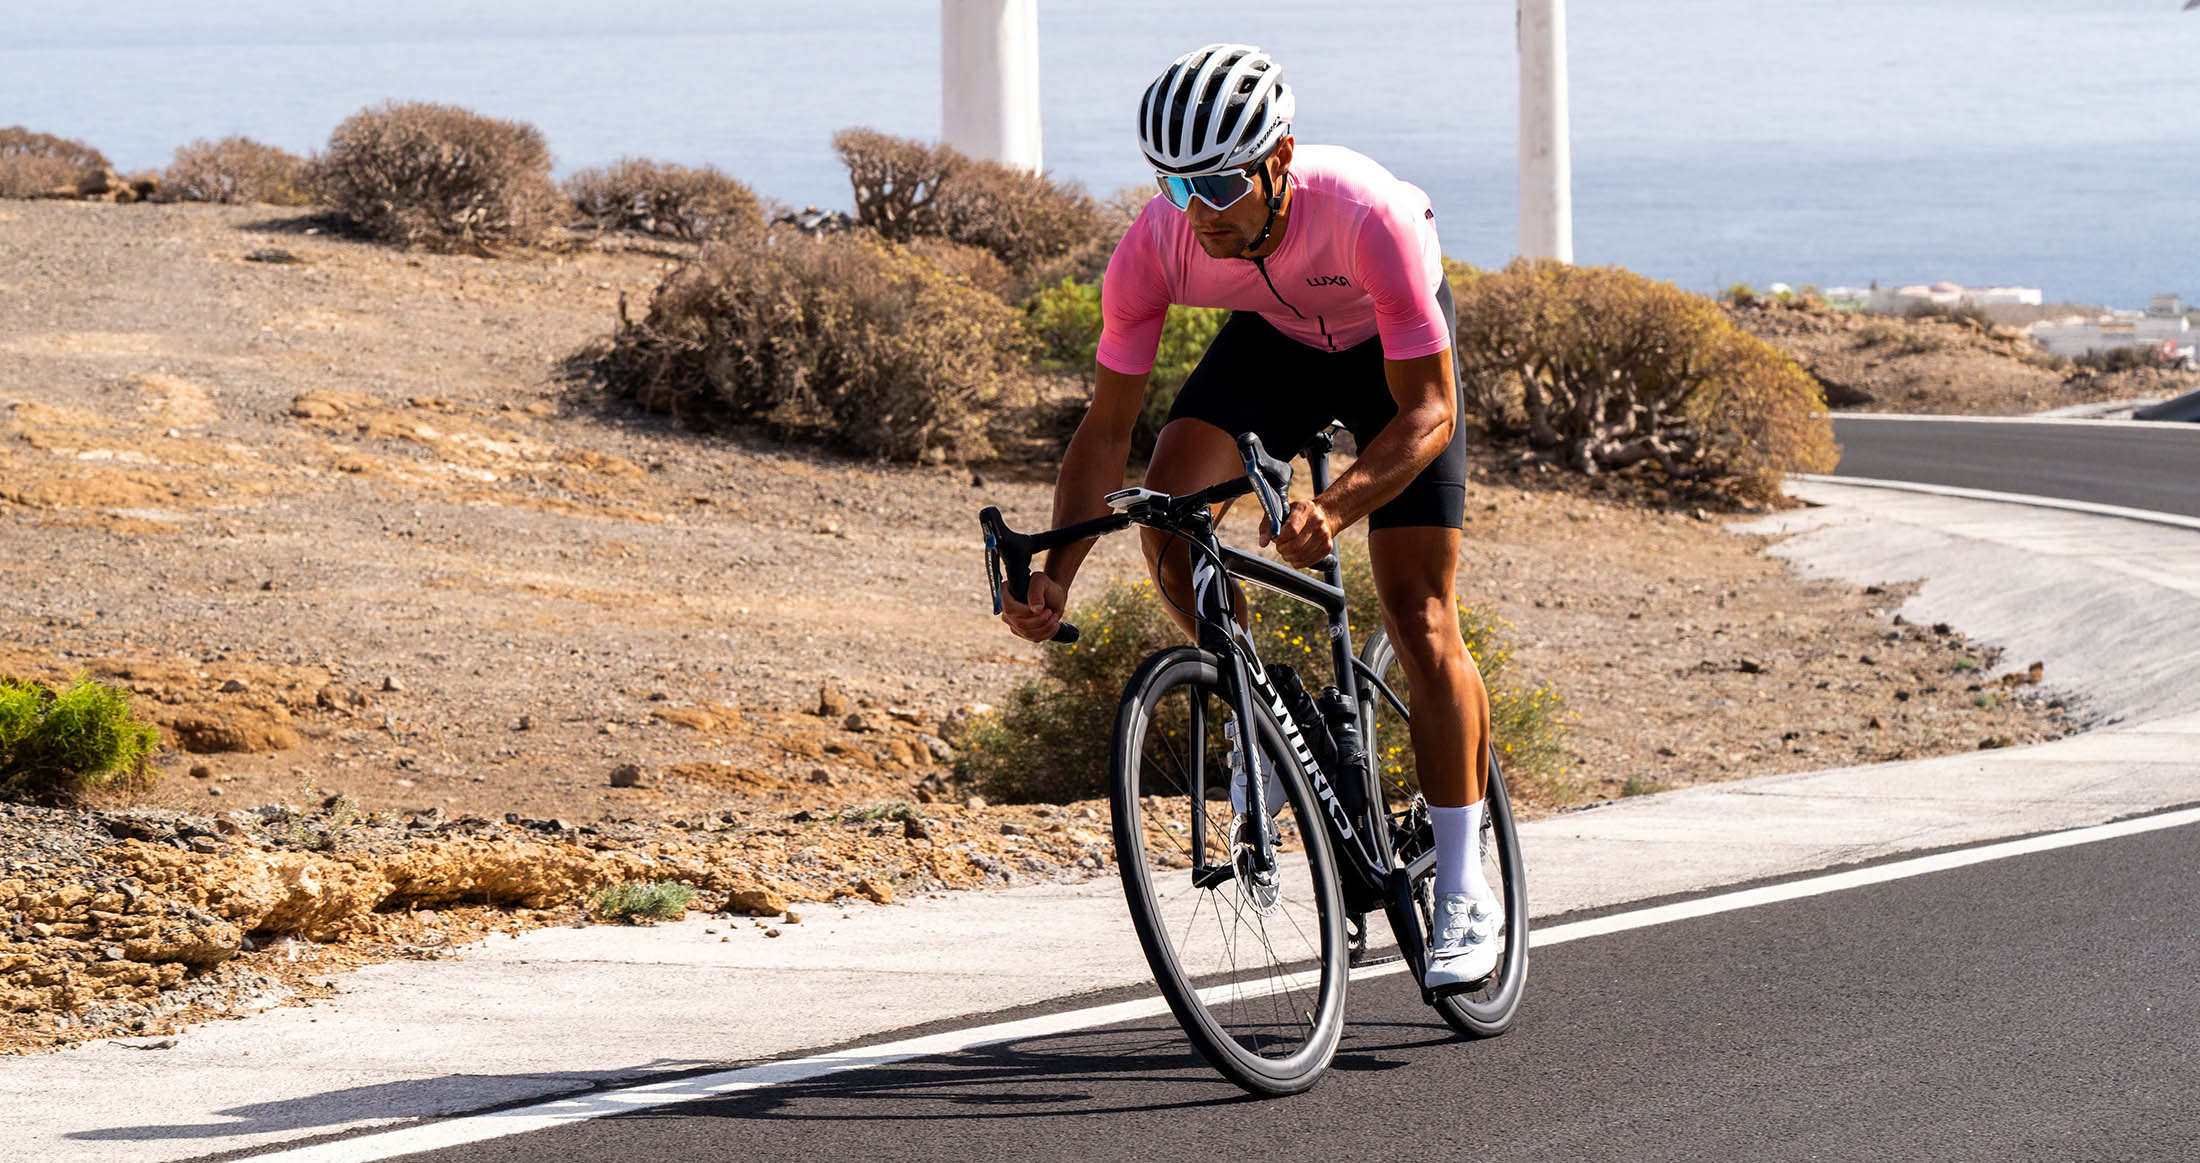 Road cyclist in pink Luxa jersey and black bib shorts